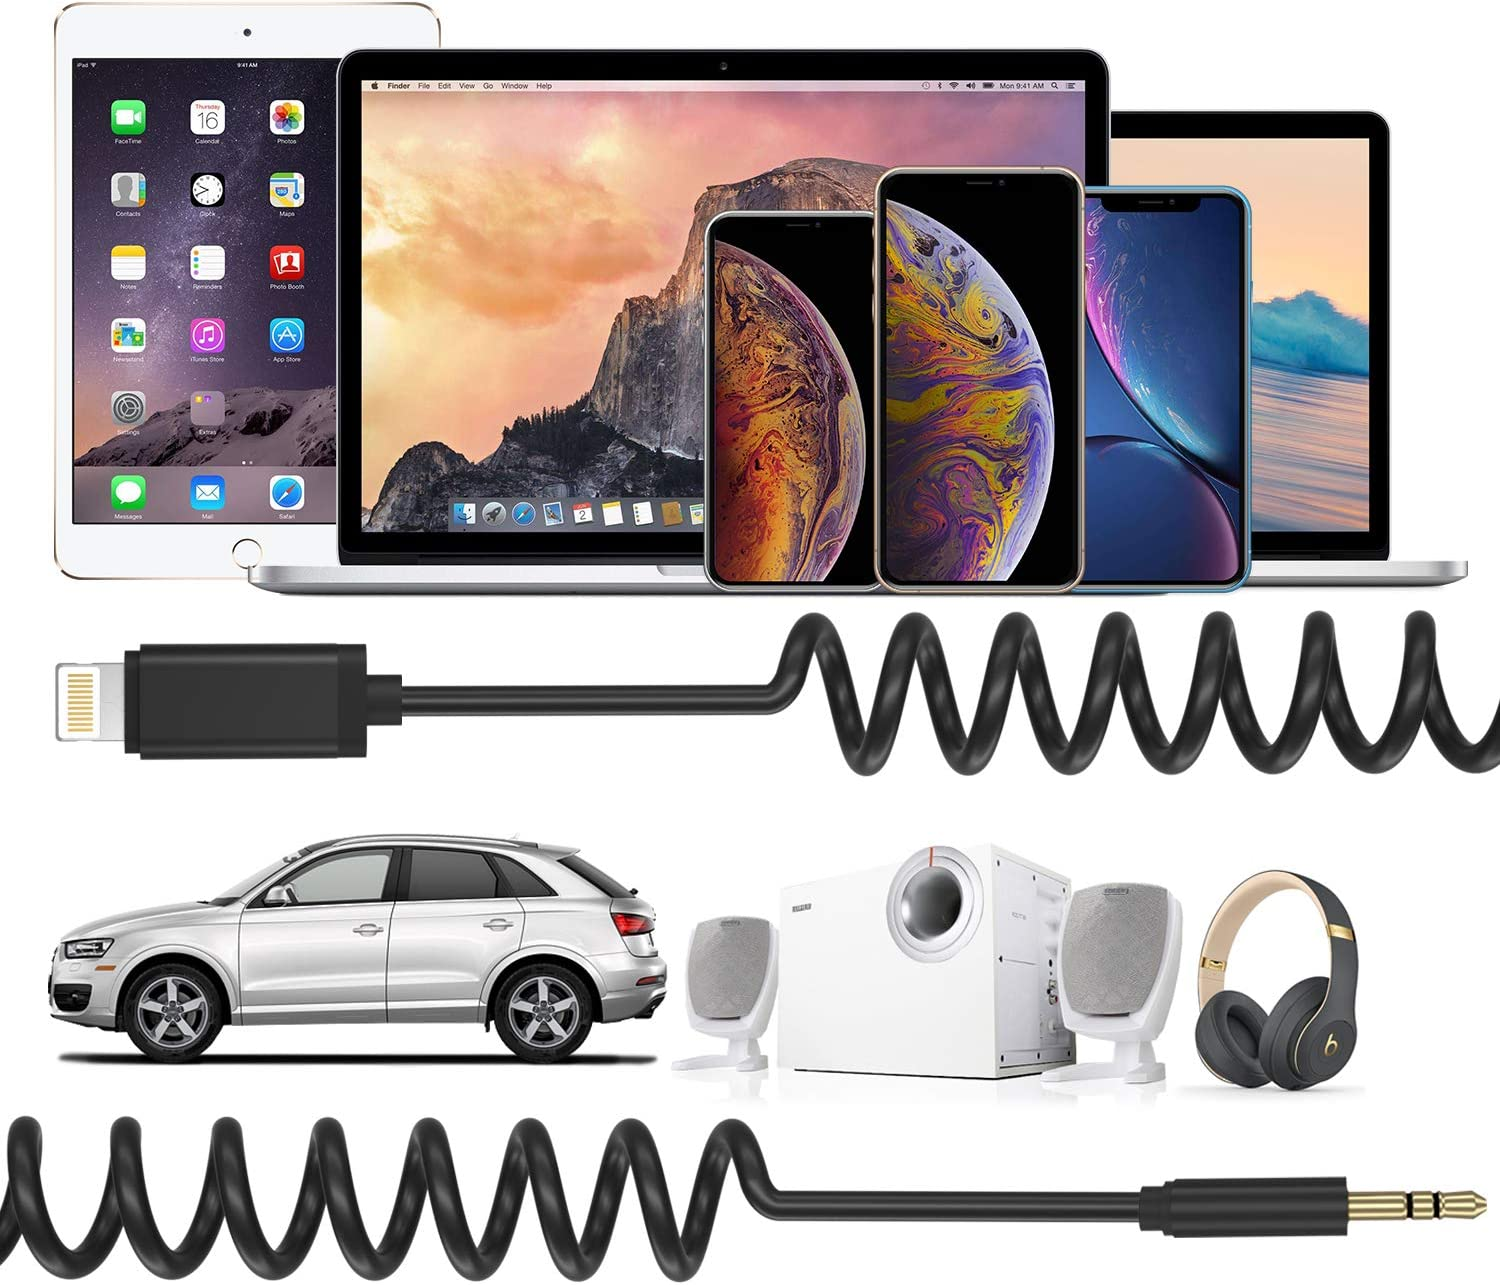 for iPhone 8//8 Plus Dreamvasion Spring Coiled Stereo Audio Cable with Male 3.5mm Headphone Jack Adapter Extend to 5ft iPhone X iPhone 8 iPhone X Aux Cord iPhone 7//7 Plus